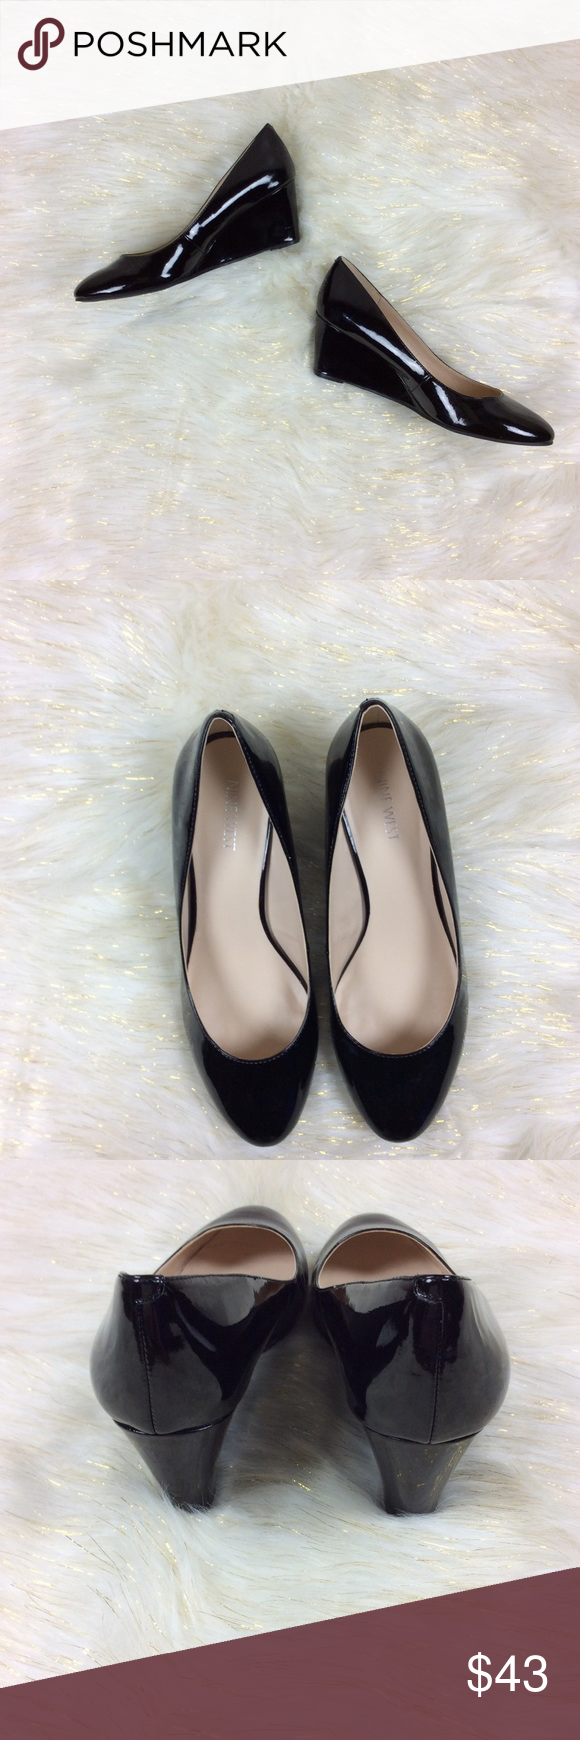 cad30cc7e2be Nine West Jessa Black Patent Wedges 9.5M Classic patent wedges that go with  everything! These are in EXCELLENT condition!! No marks or…